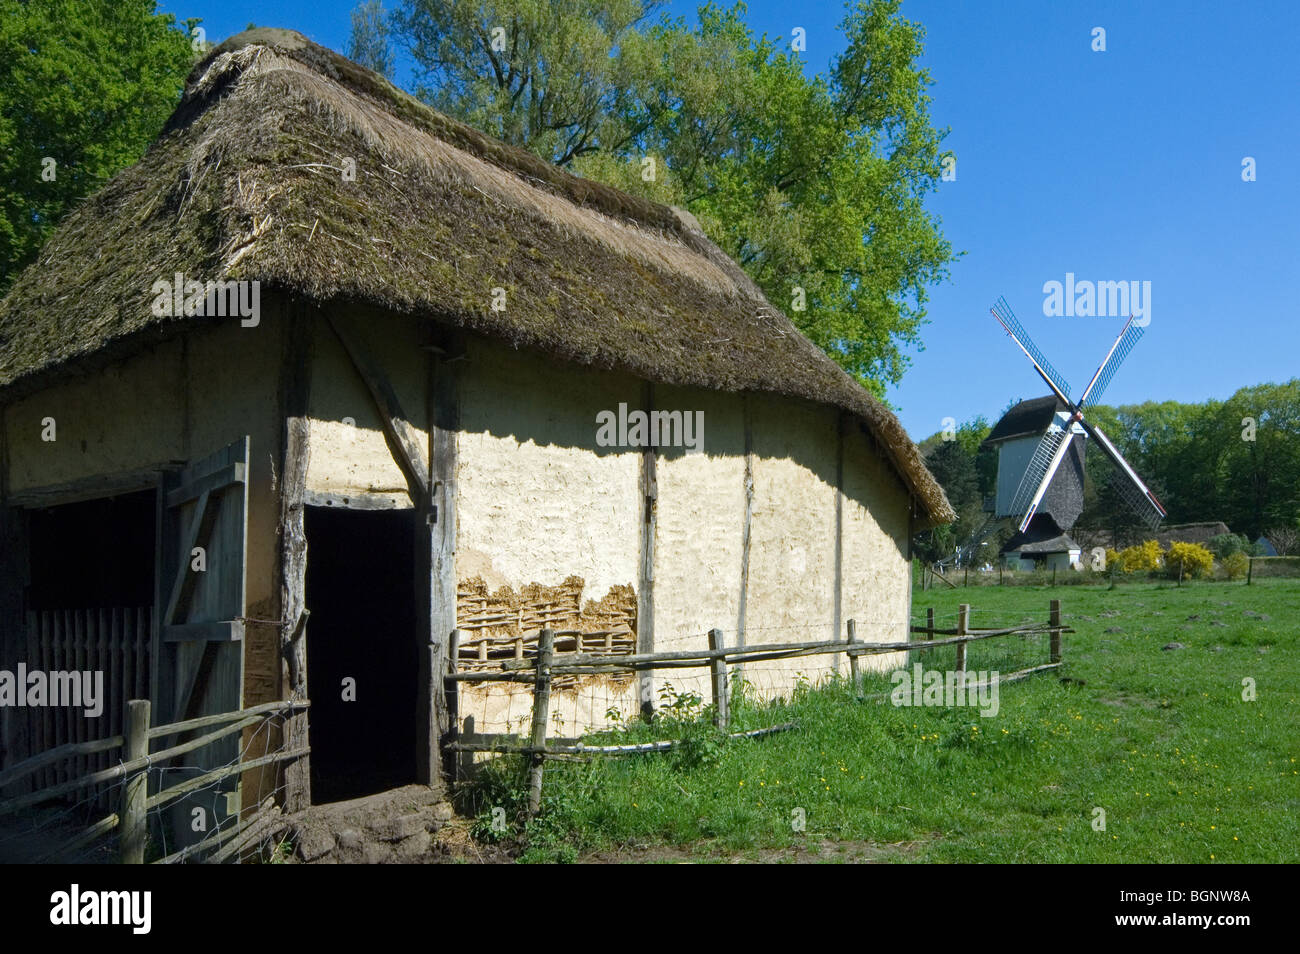 The Standerd windmill and sheep fold at the open air museum Bokrijk, Belgium - Stock Image